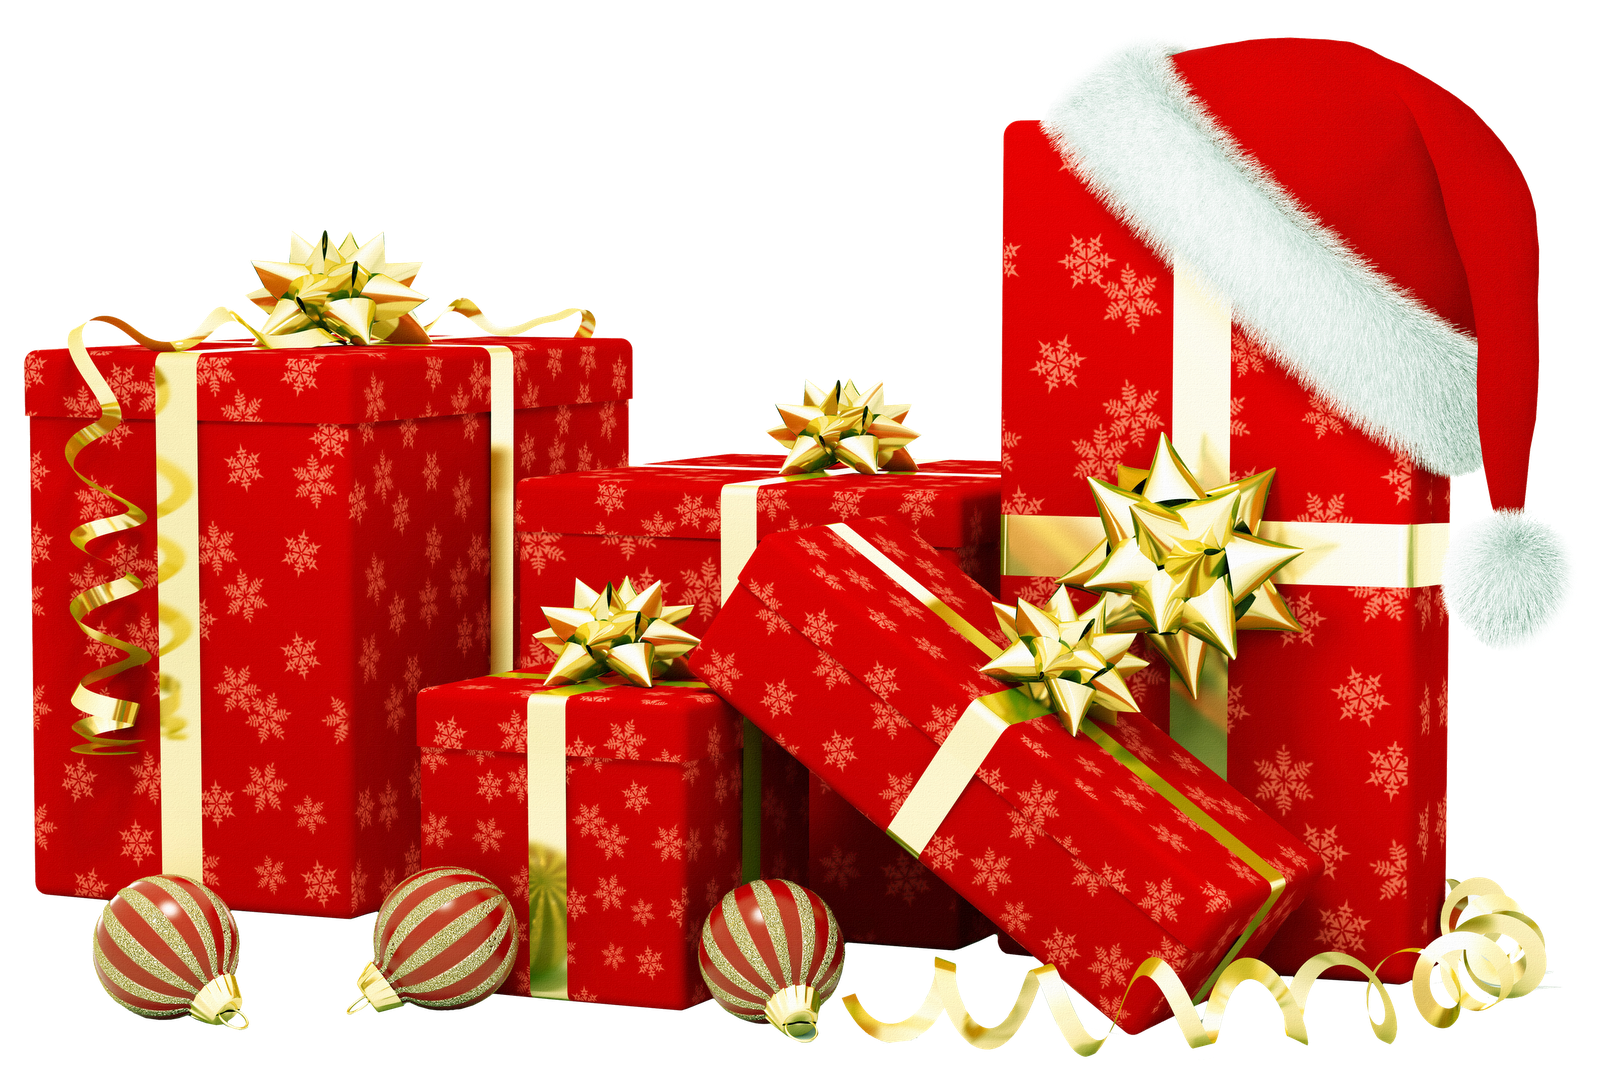 Cracker clipart xmas. Ineed files collection merry